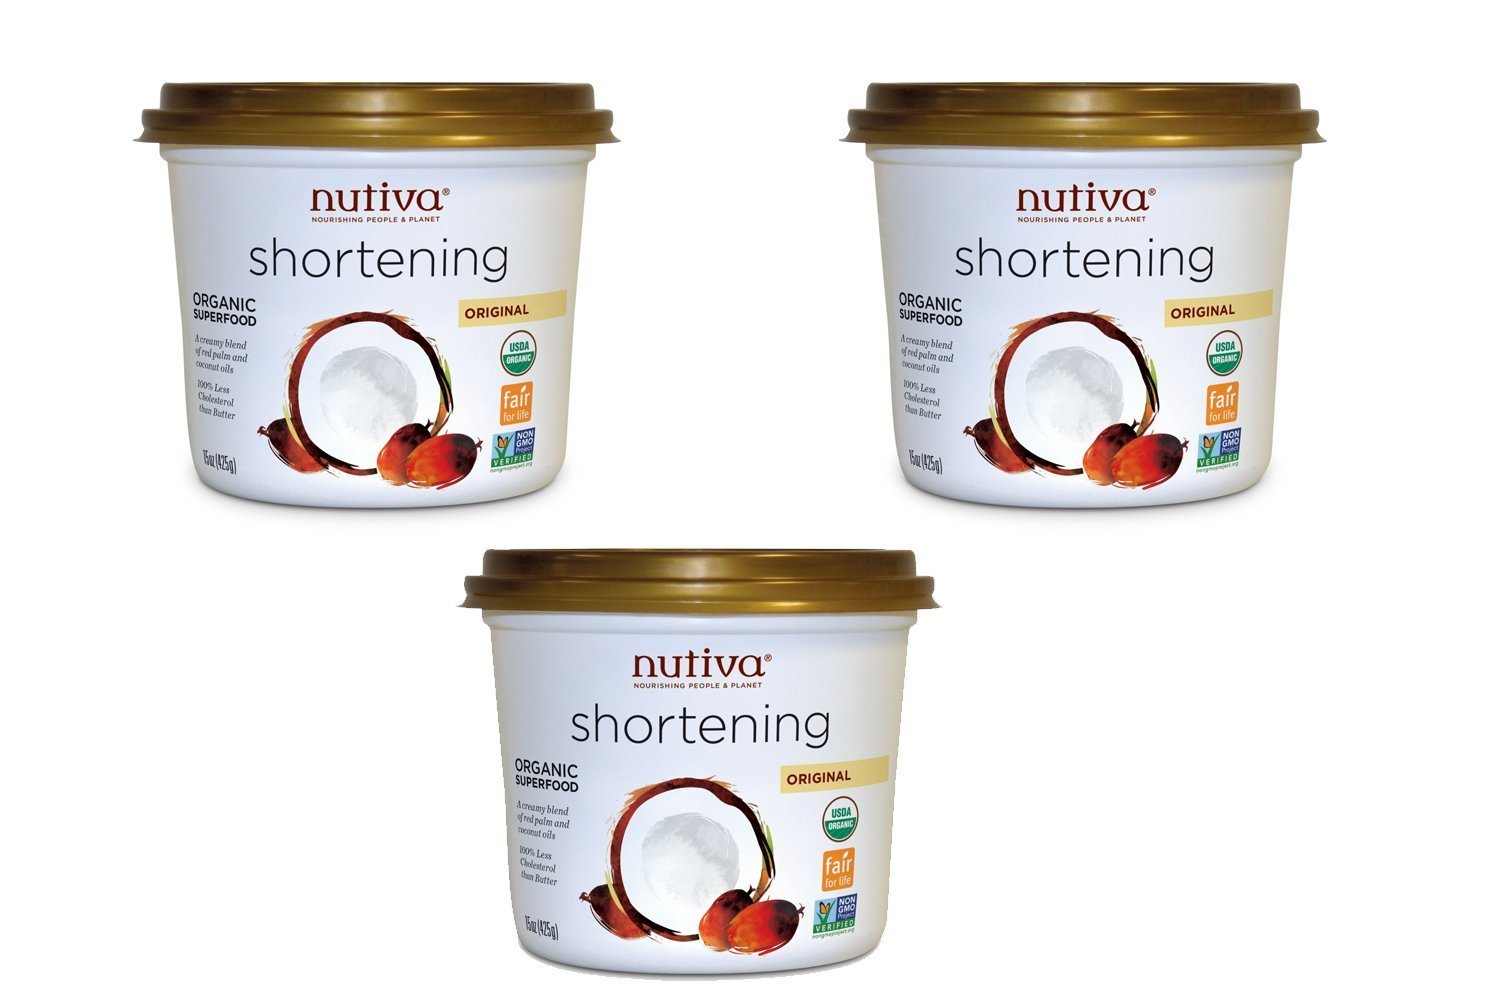 Nutiva Red Palm Shortening Organic Superfood, 15 Ounce [3 Pack] by Nutiva